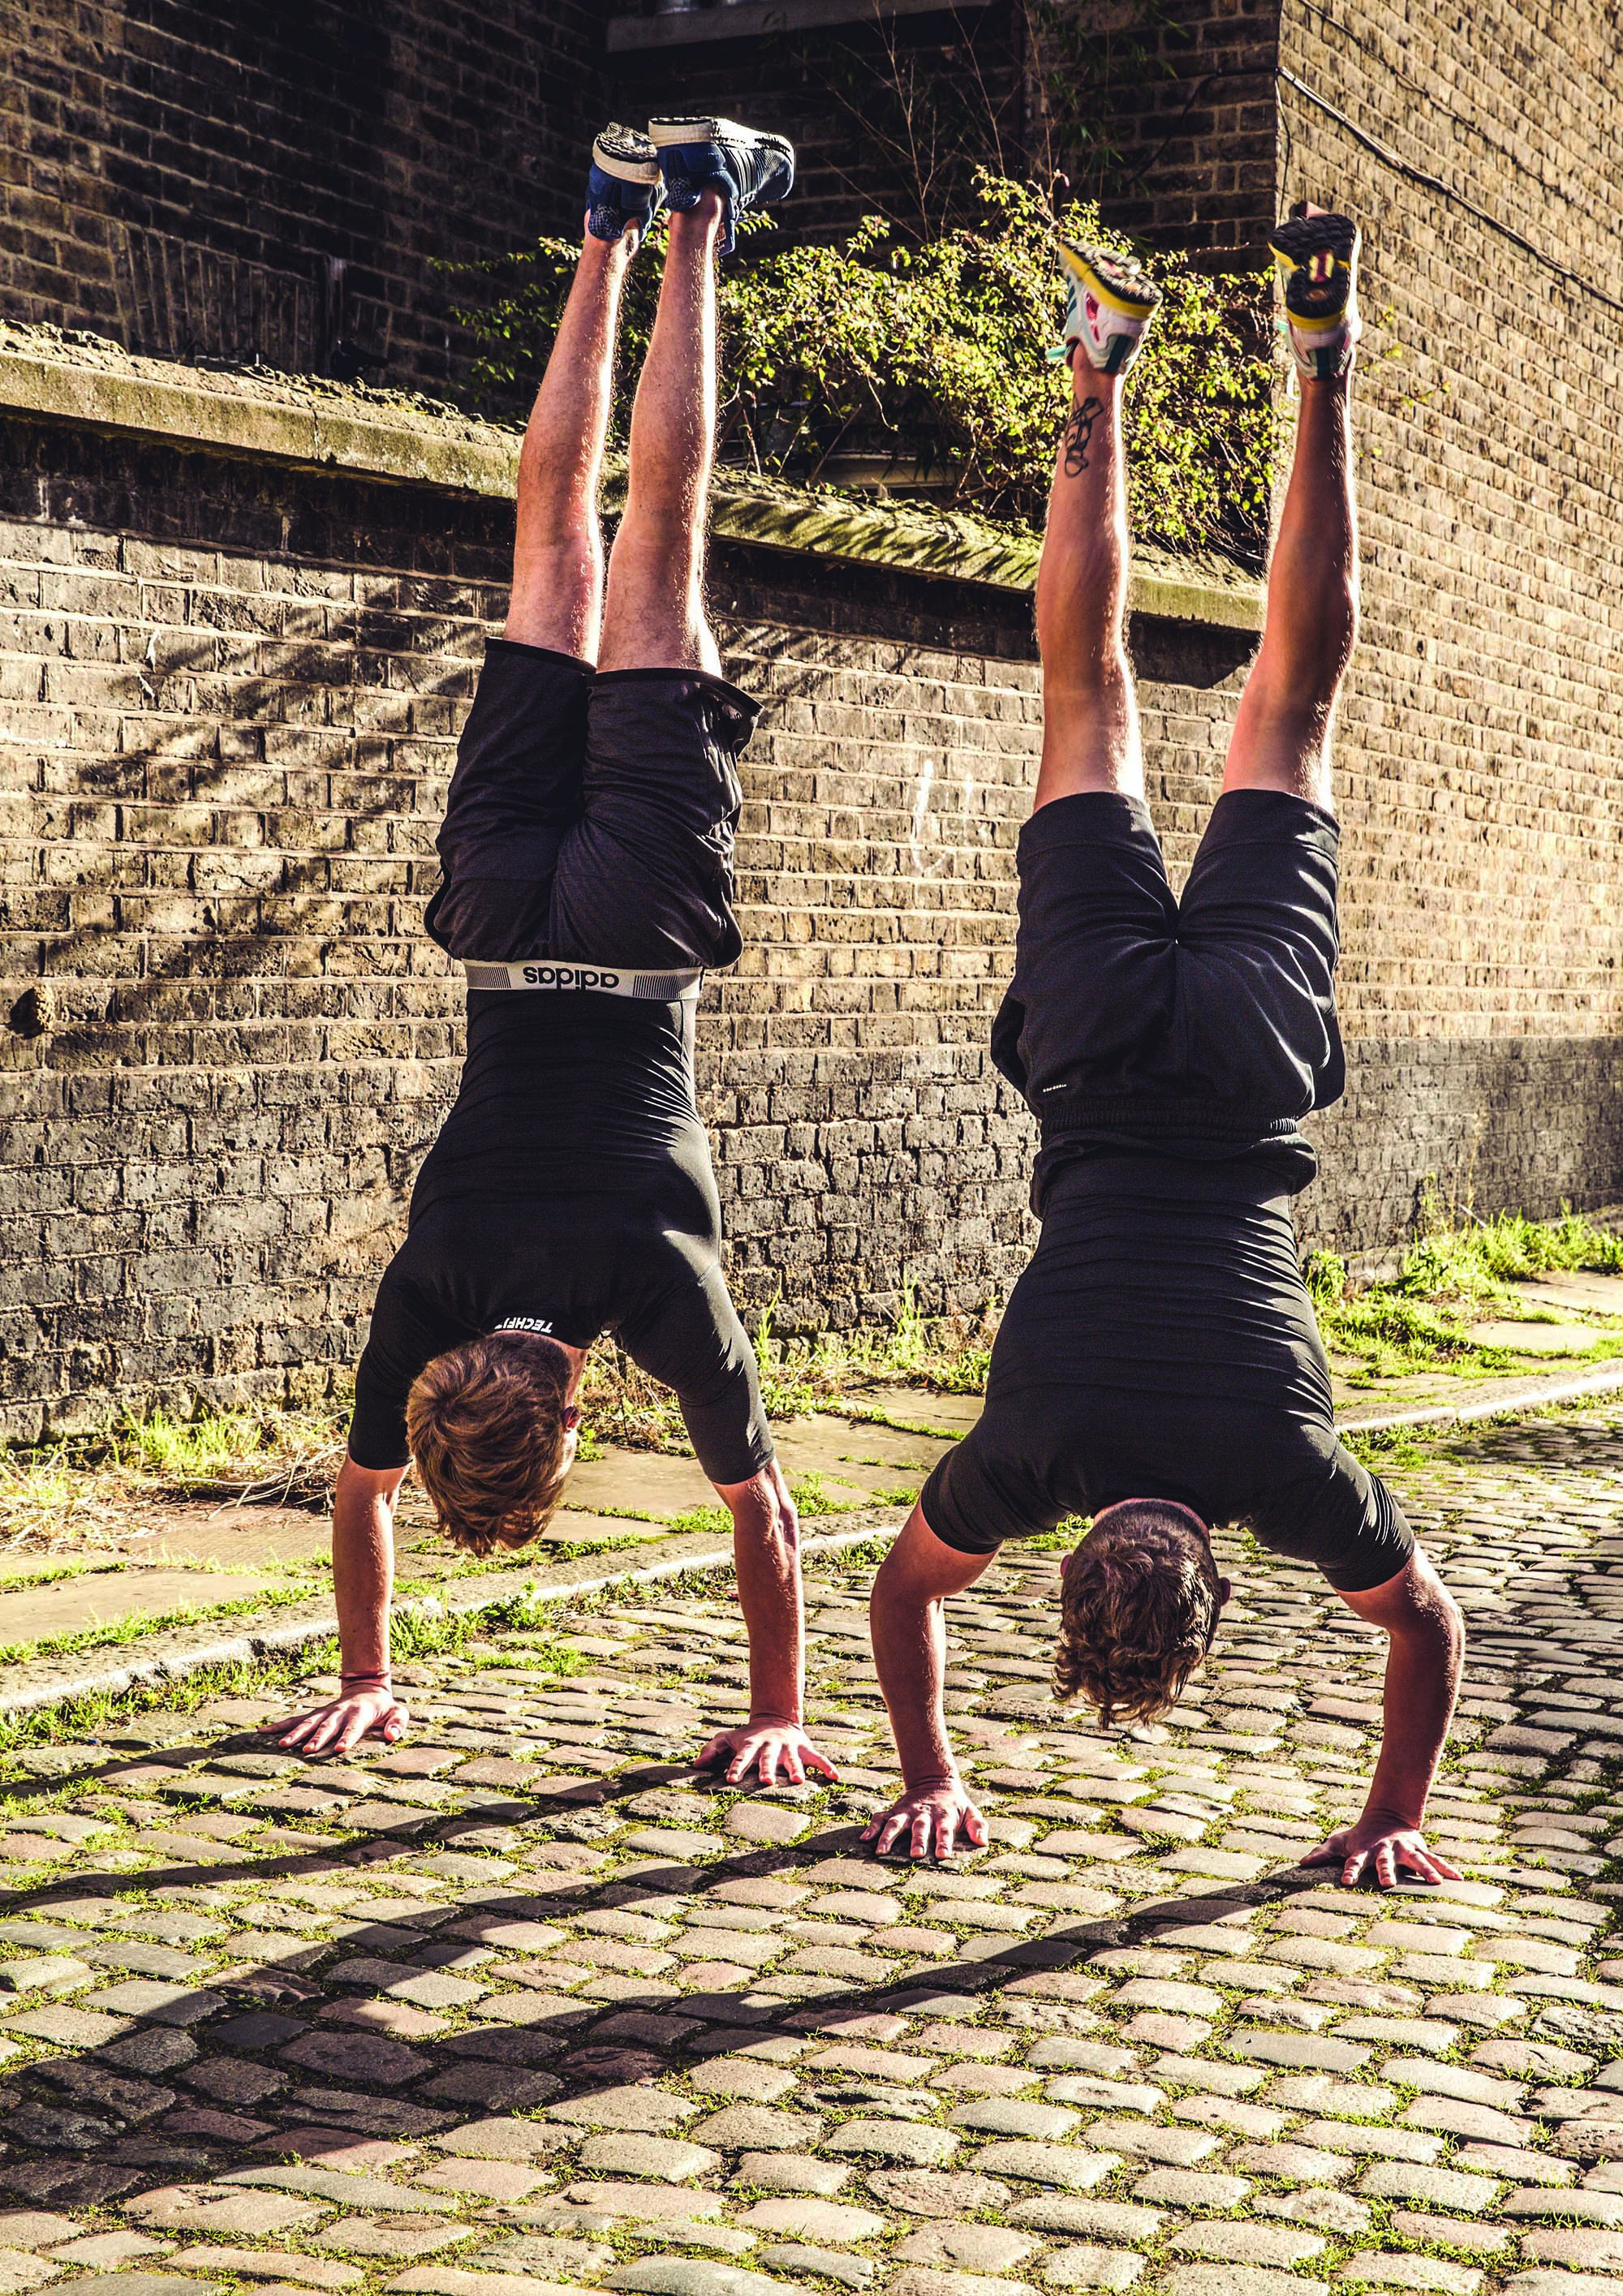 Why I've fallen in love with Calisthenics